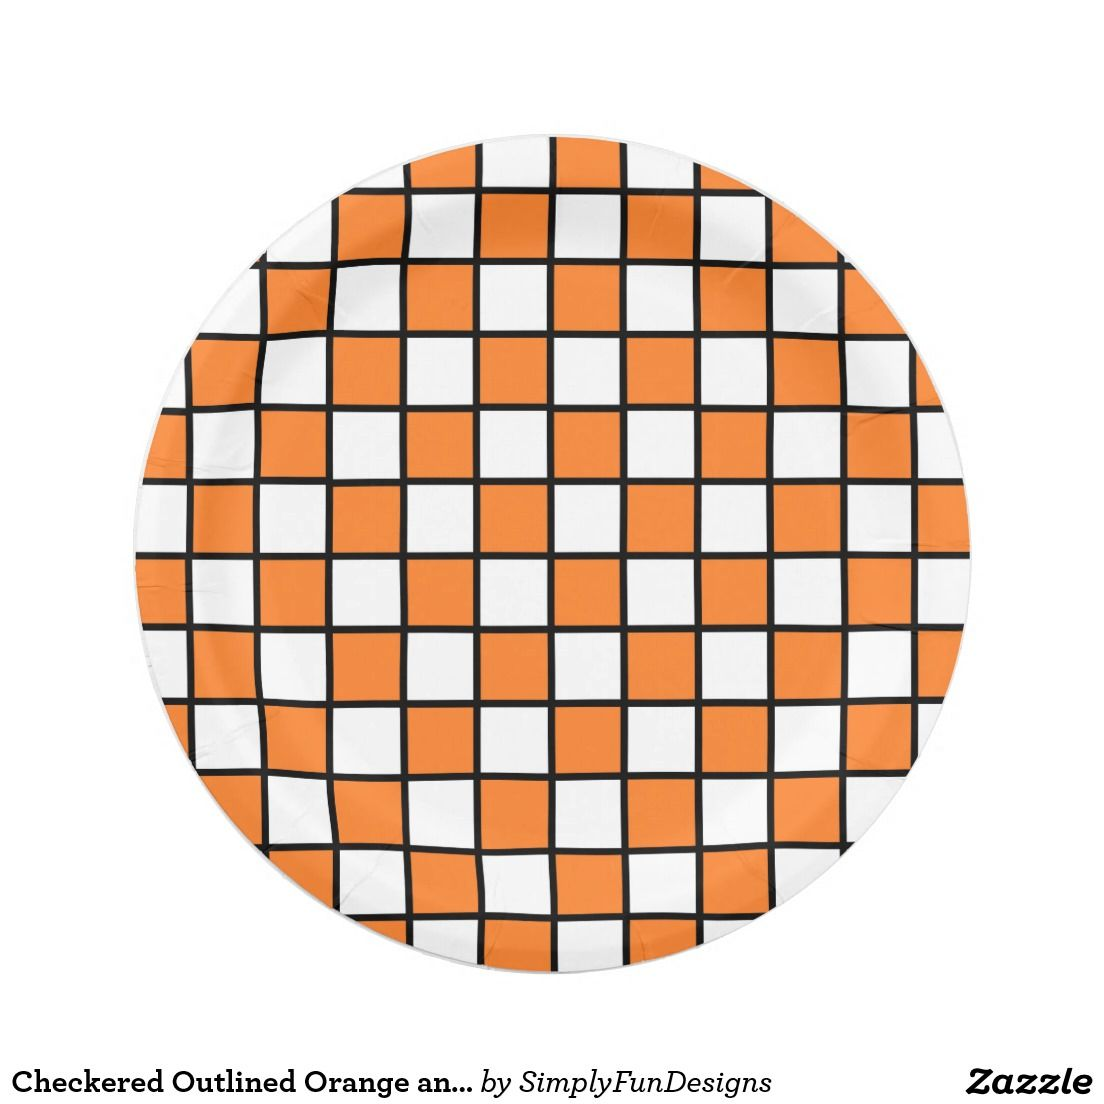 Checkered Outlined Orange and Black Paper Plate  sc 1 st  Pinterest & Checkered Outlined Orange and Black Paper Plate | Pinterest | Black ...